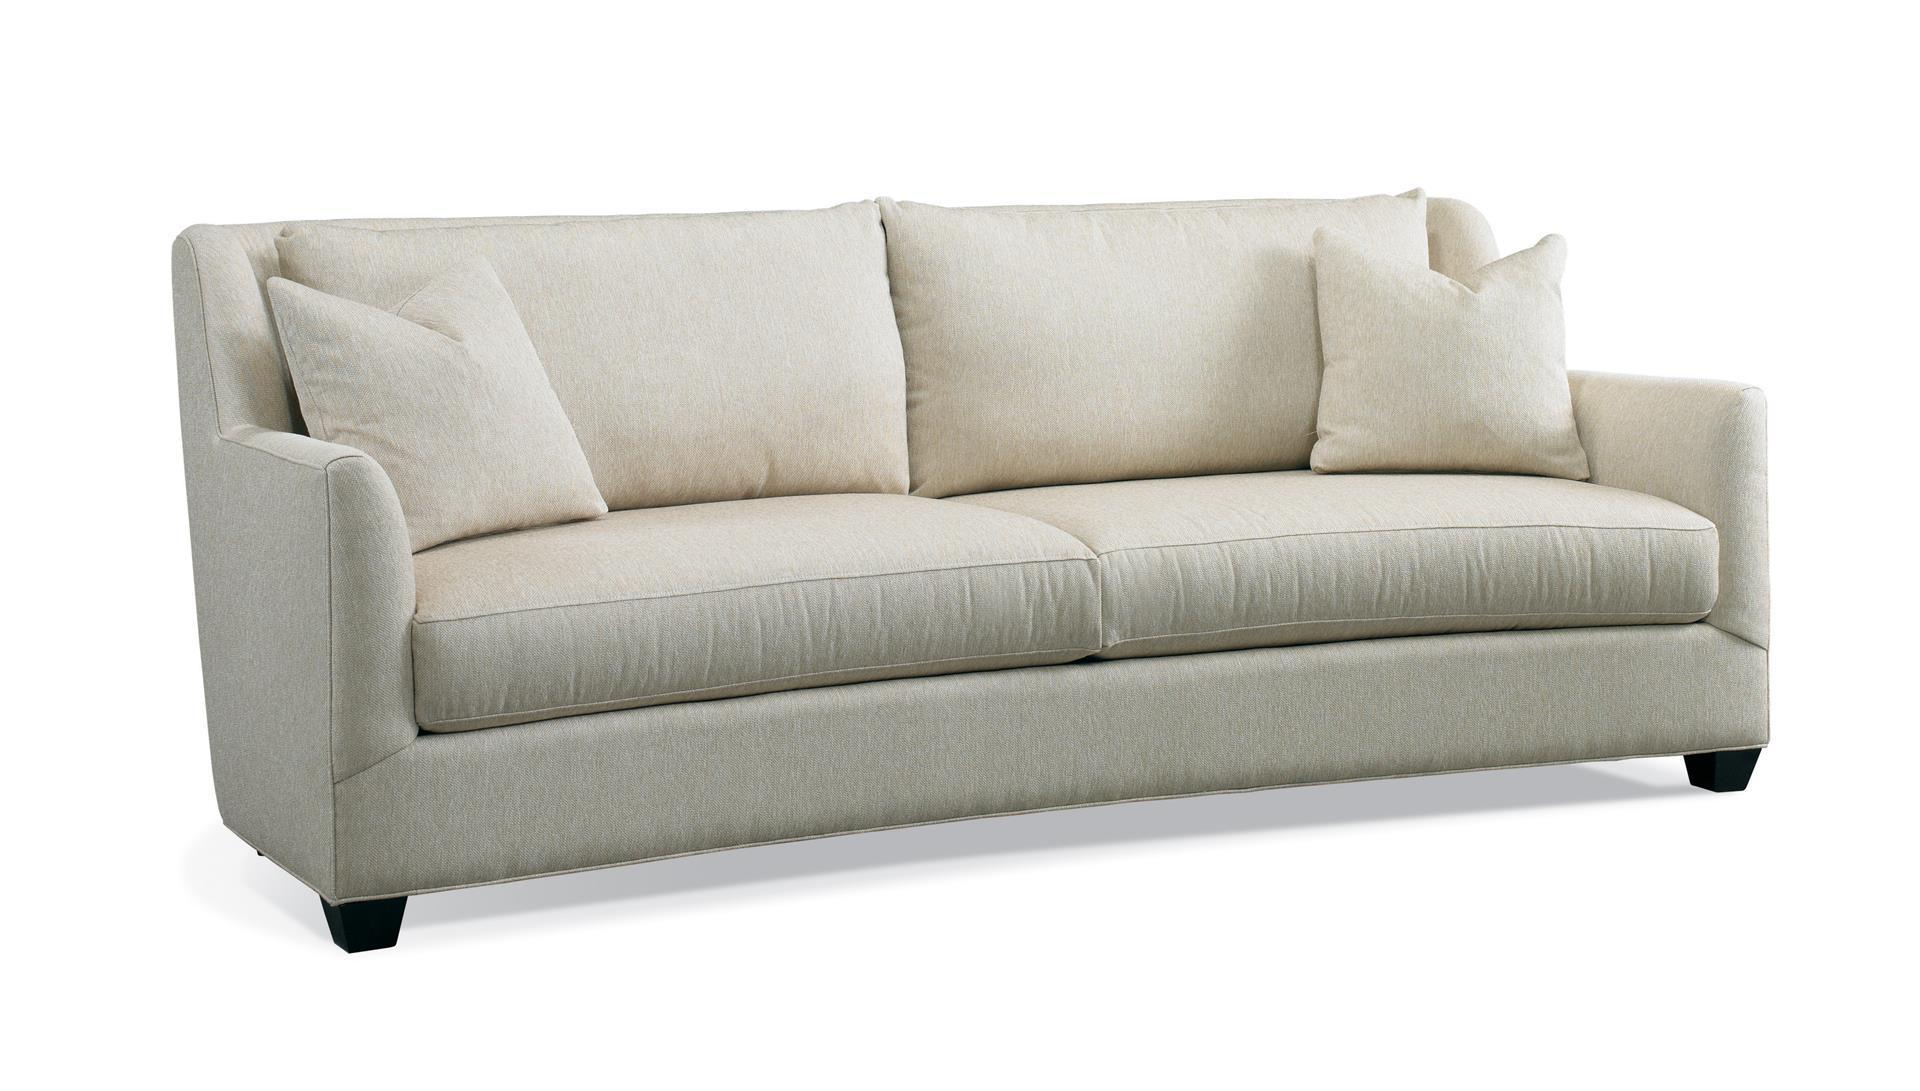 Precedent Callie Sofa From Dutchcrafters Throughout Callie Sofa Chairs (View 16 of 25)